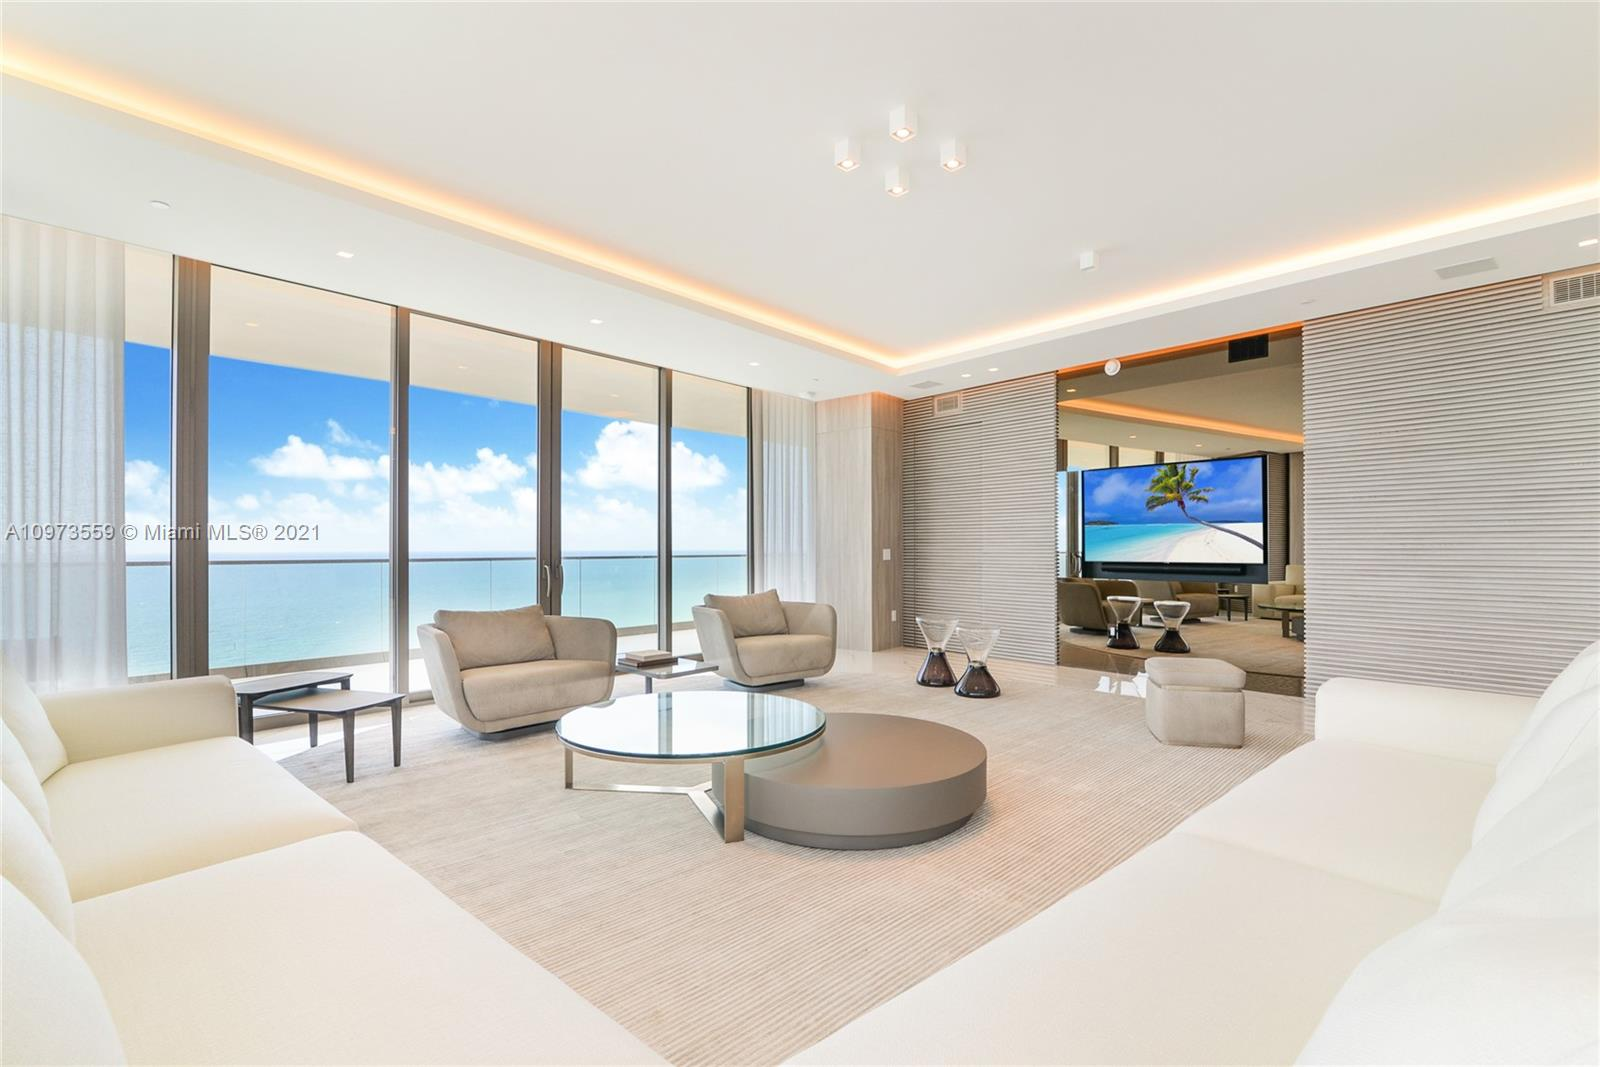 FINISHED AND FURNISHED! Amazing furnished Residences at Armani Casa. Worth to see and show! The most beautiful big corner unit and flow-through units with unobstructed views to Ocean and Bay. Amazing wrap around terrace of about 1,435 SF on top to the 3,839 SF under AC. Fully finished and furnished (4 bedrooms, 5.5 baths, Staff Room and much more. Exquisitely finished and decorated . Unparalleled amenities and 5 star service includes Oceanfront Pool + Bar, Restaurant, Spa & Fitness Center, Grand Lobby and Bar Lounge, Cigar and Wine Room, Children's play area, Concierge, Security and Valet parking. --